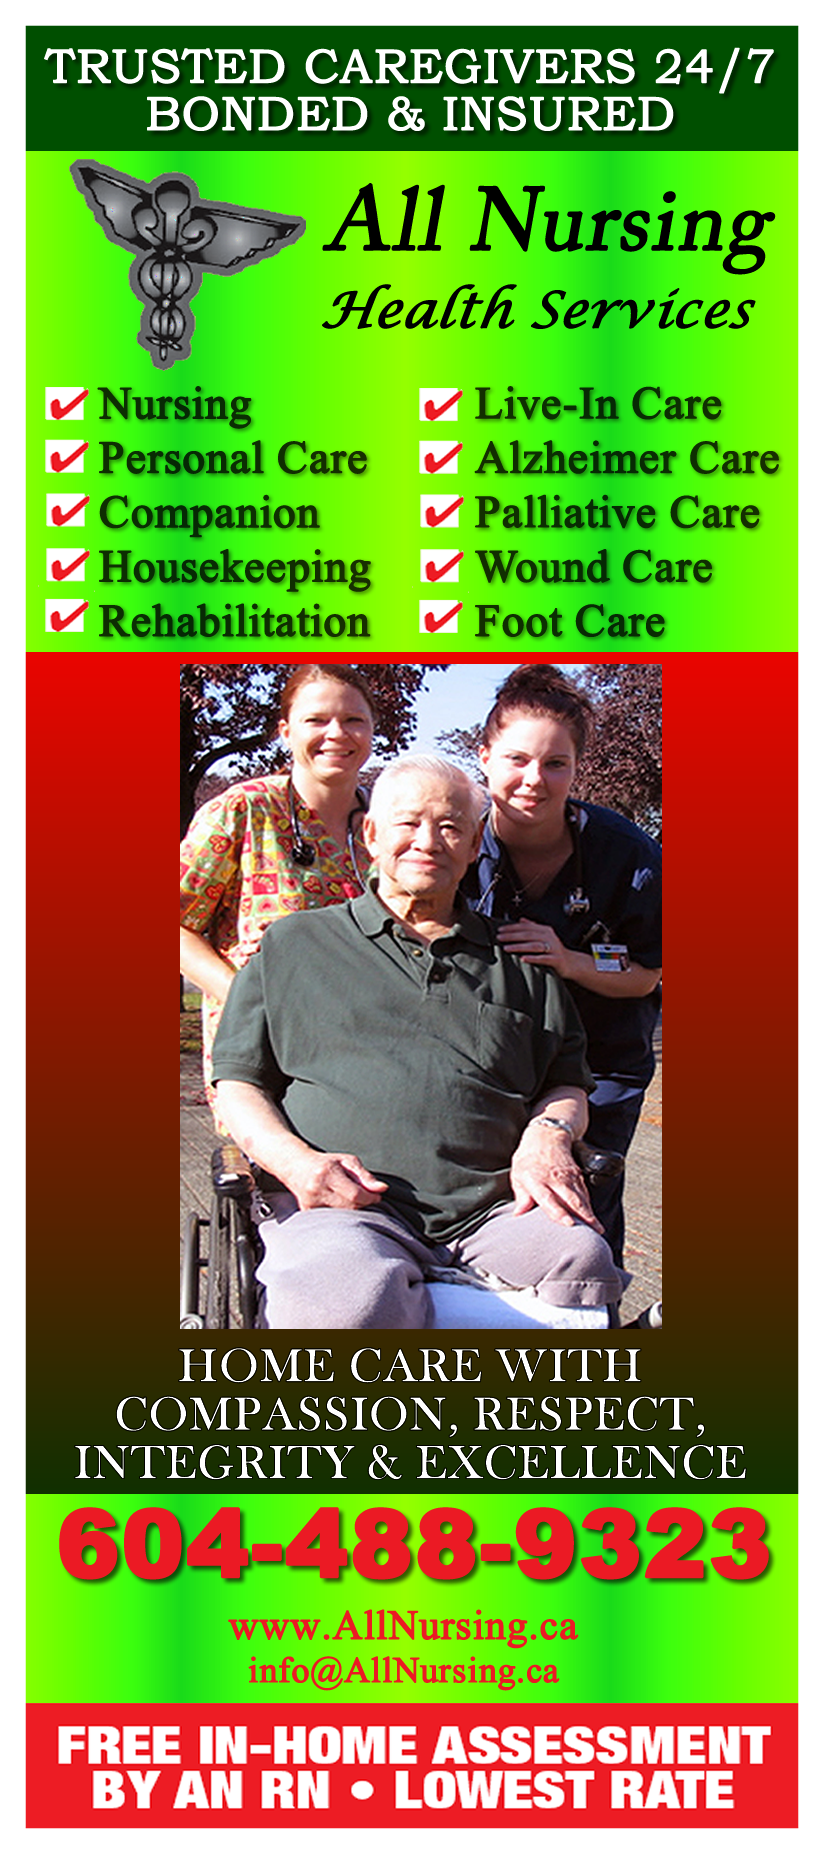 All Nursing Health Services Inc is Vancouver based home